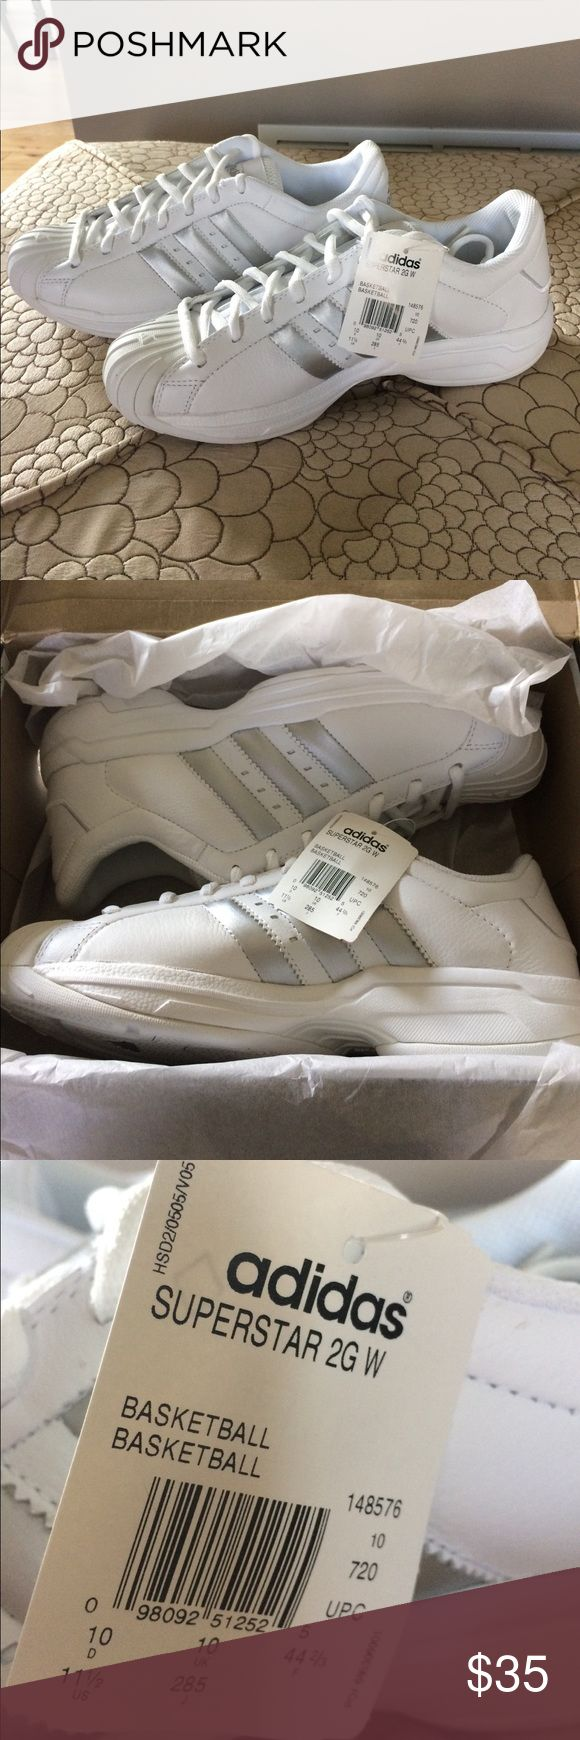 New Adidas Superstar basketball shoes Never worn white with silver stripe basketball or running shoes. Adidas Shoes Athletic Shoes